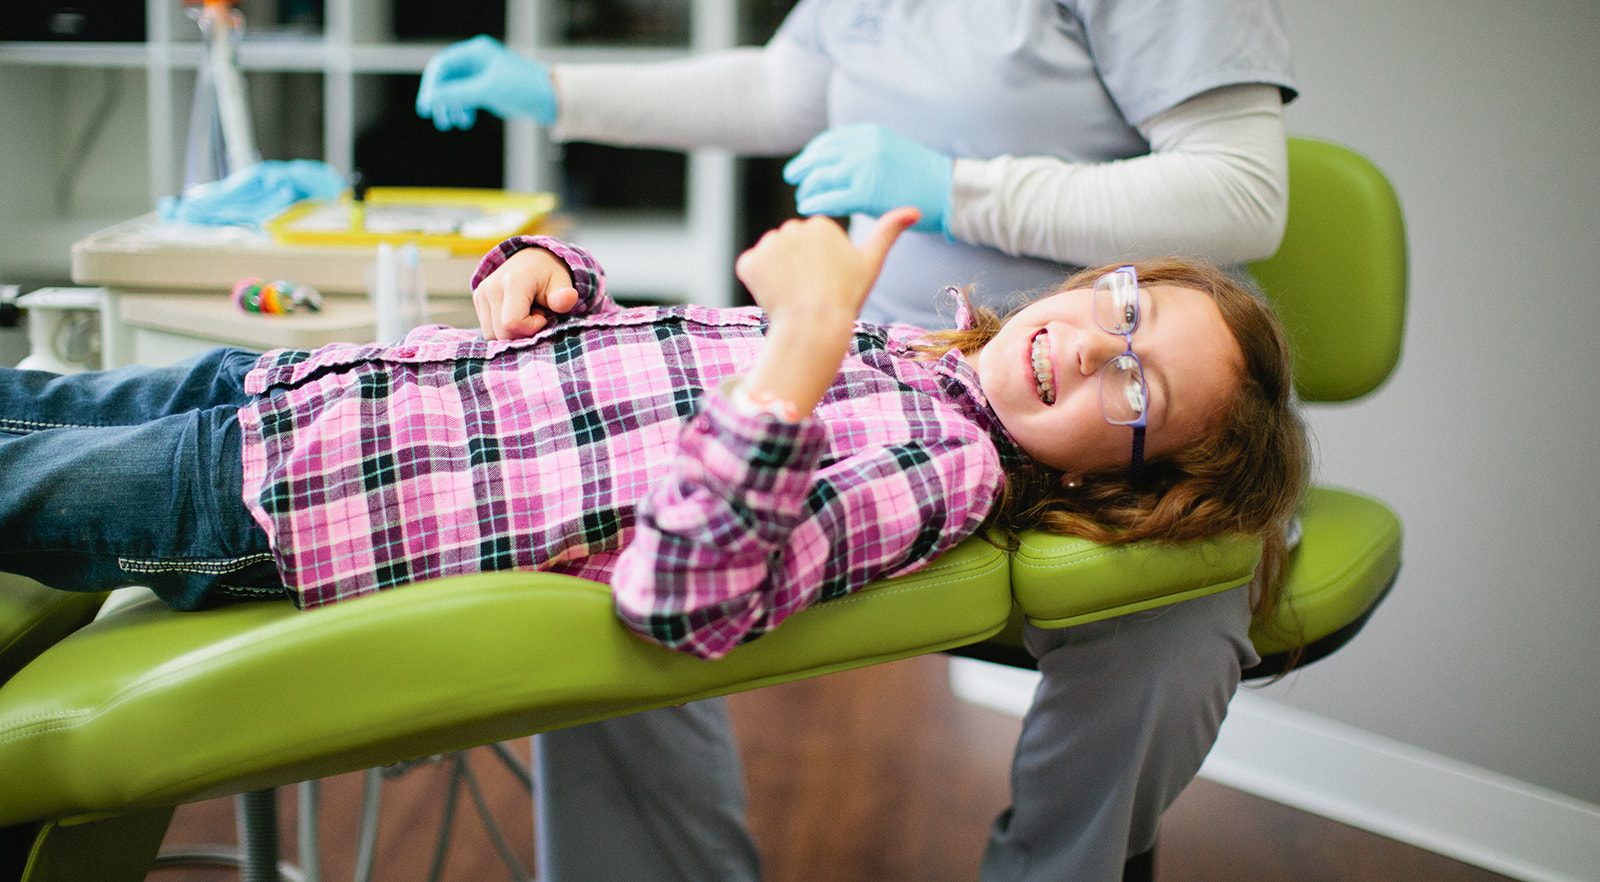 Girl smiling with braces in an orthodontic chair